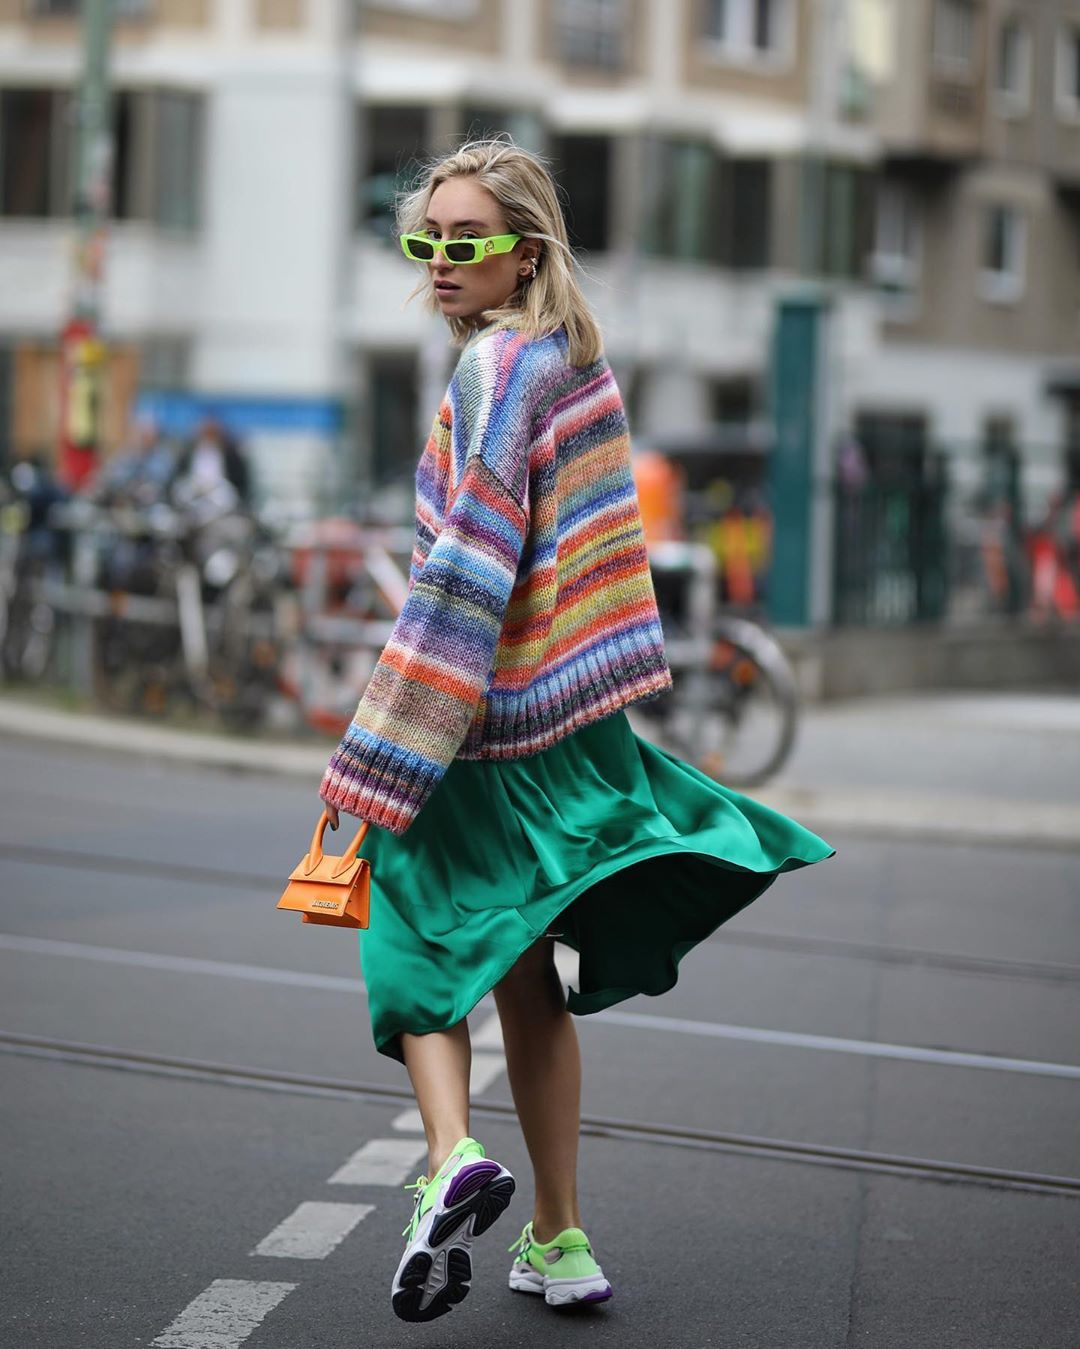 sonia-lyson-sneaker-outfit-fall-inspiration